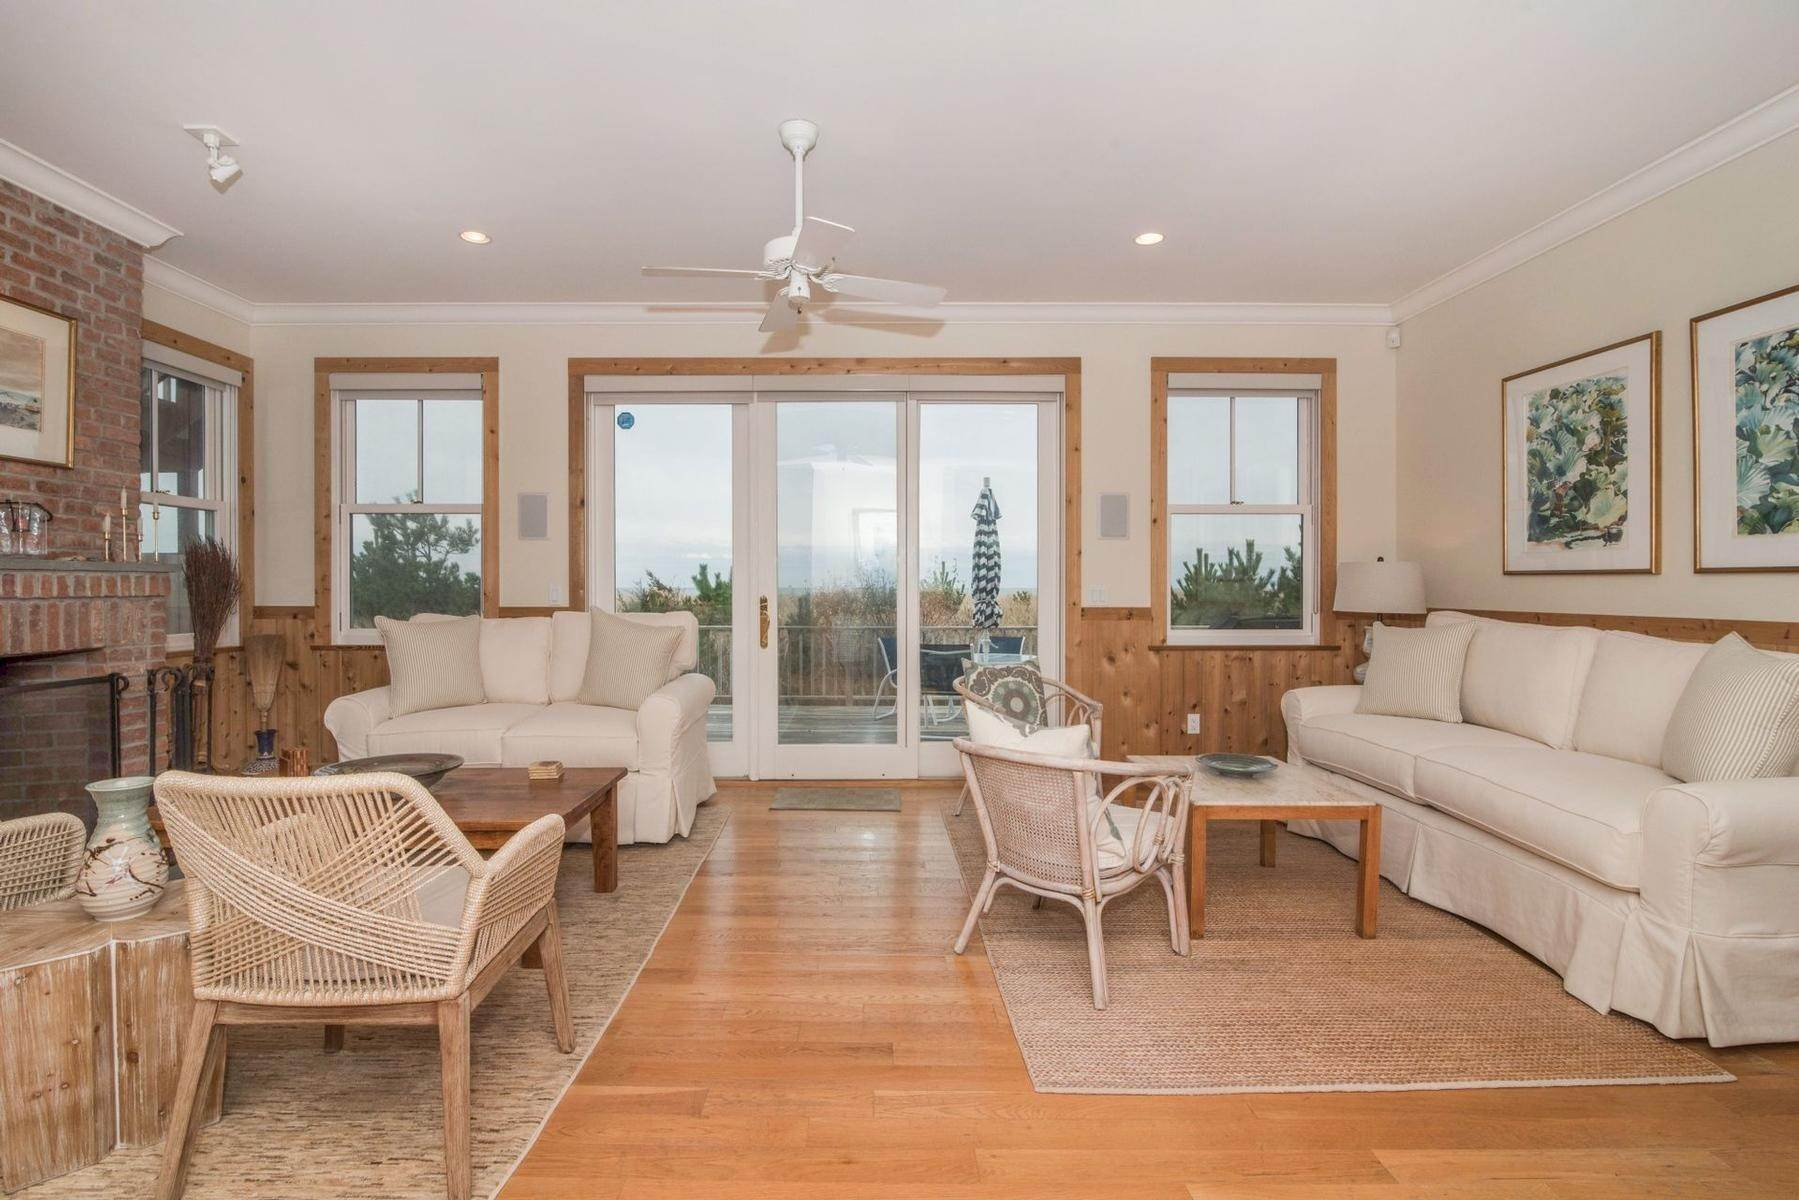 Single Family Home at Amagansett Oceanfront Amagansett, NY 11930